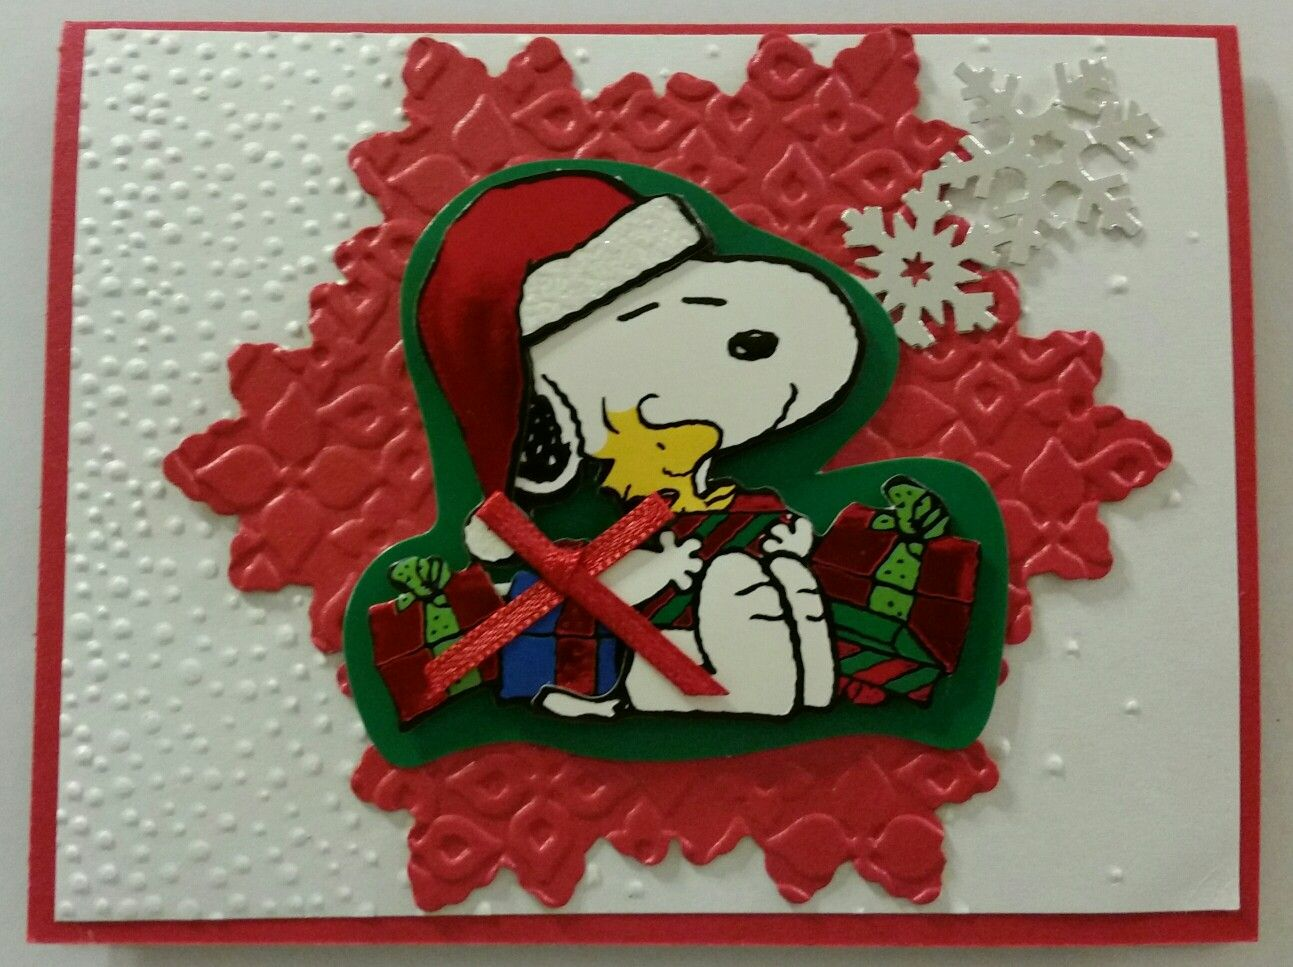 Holiday greeting cards costco tags handmade birthday card ideas snowflake die with costco gift tag costco gift tag cards a7078701aa552b395adf3e55300d37cf 537687642996820696 holiday greeting cards costco tags kristyandbryce Choice Image